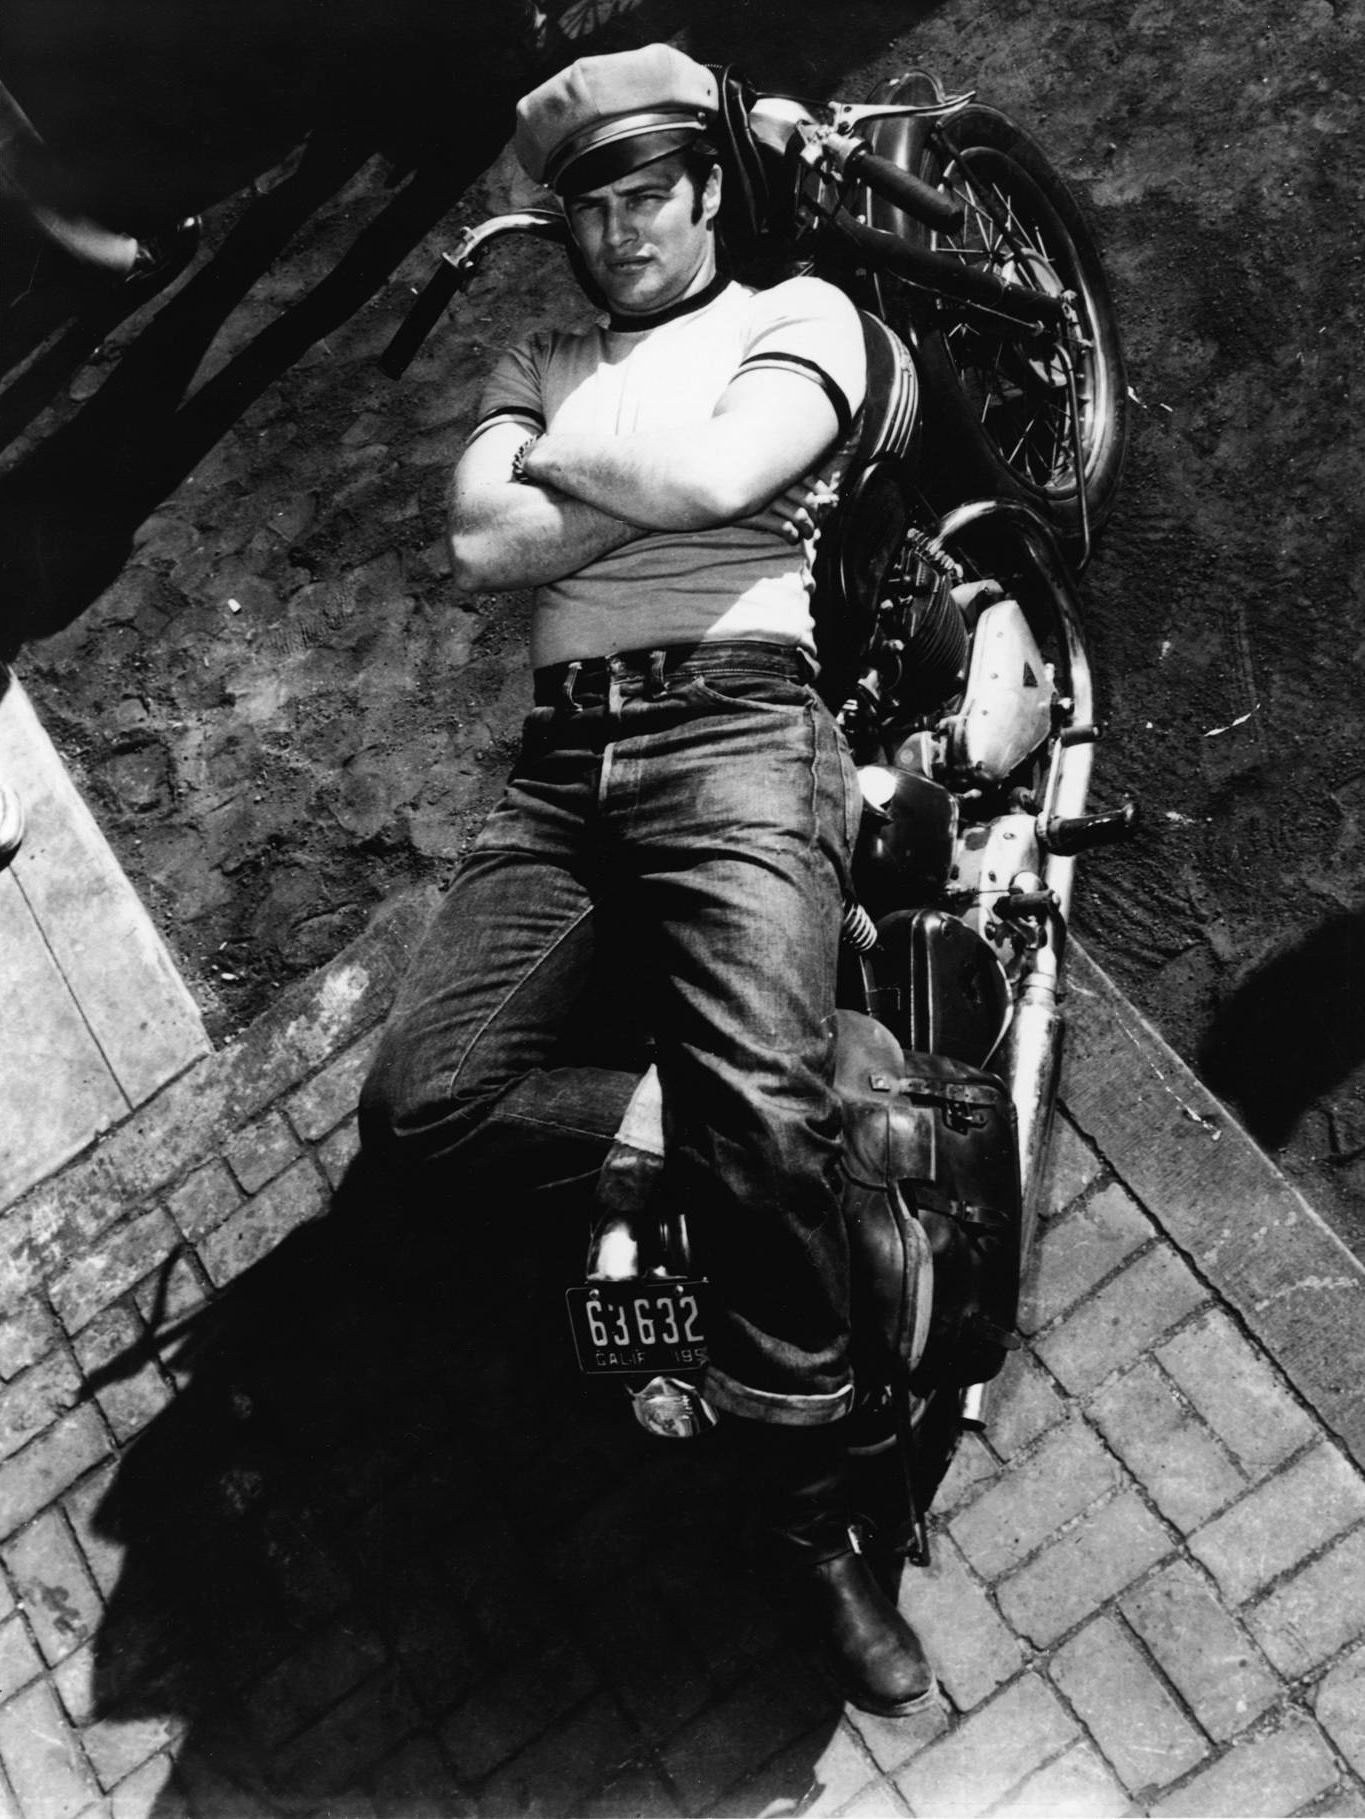 The Wild One - Marlon Brando